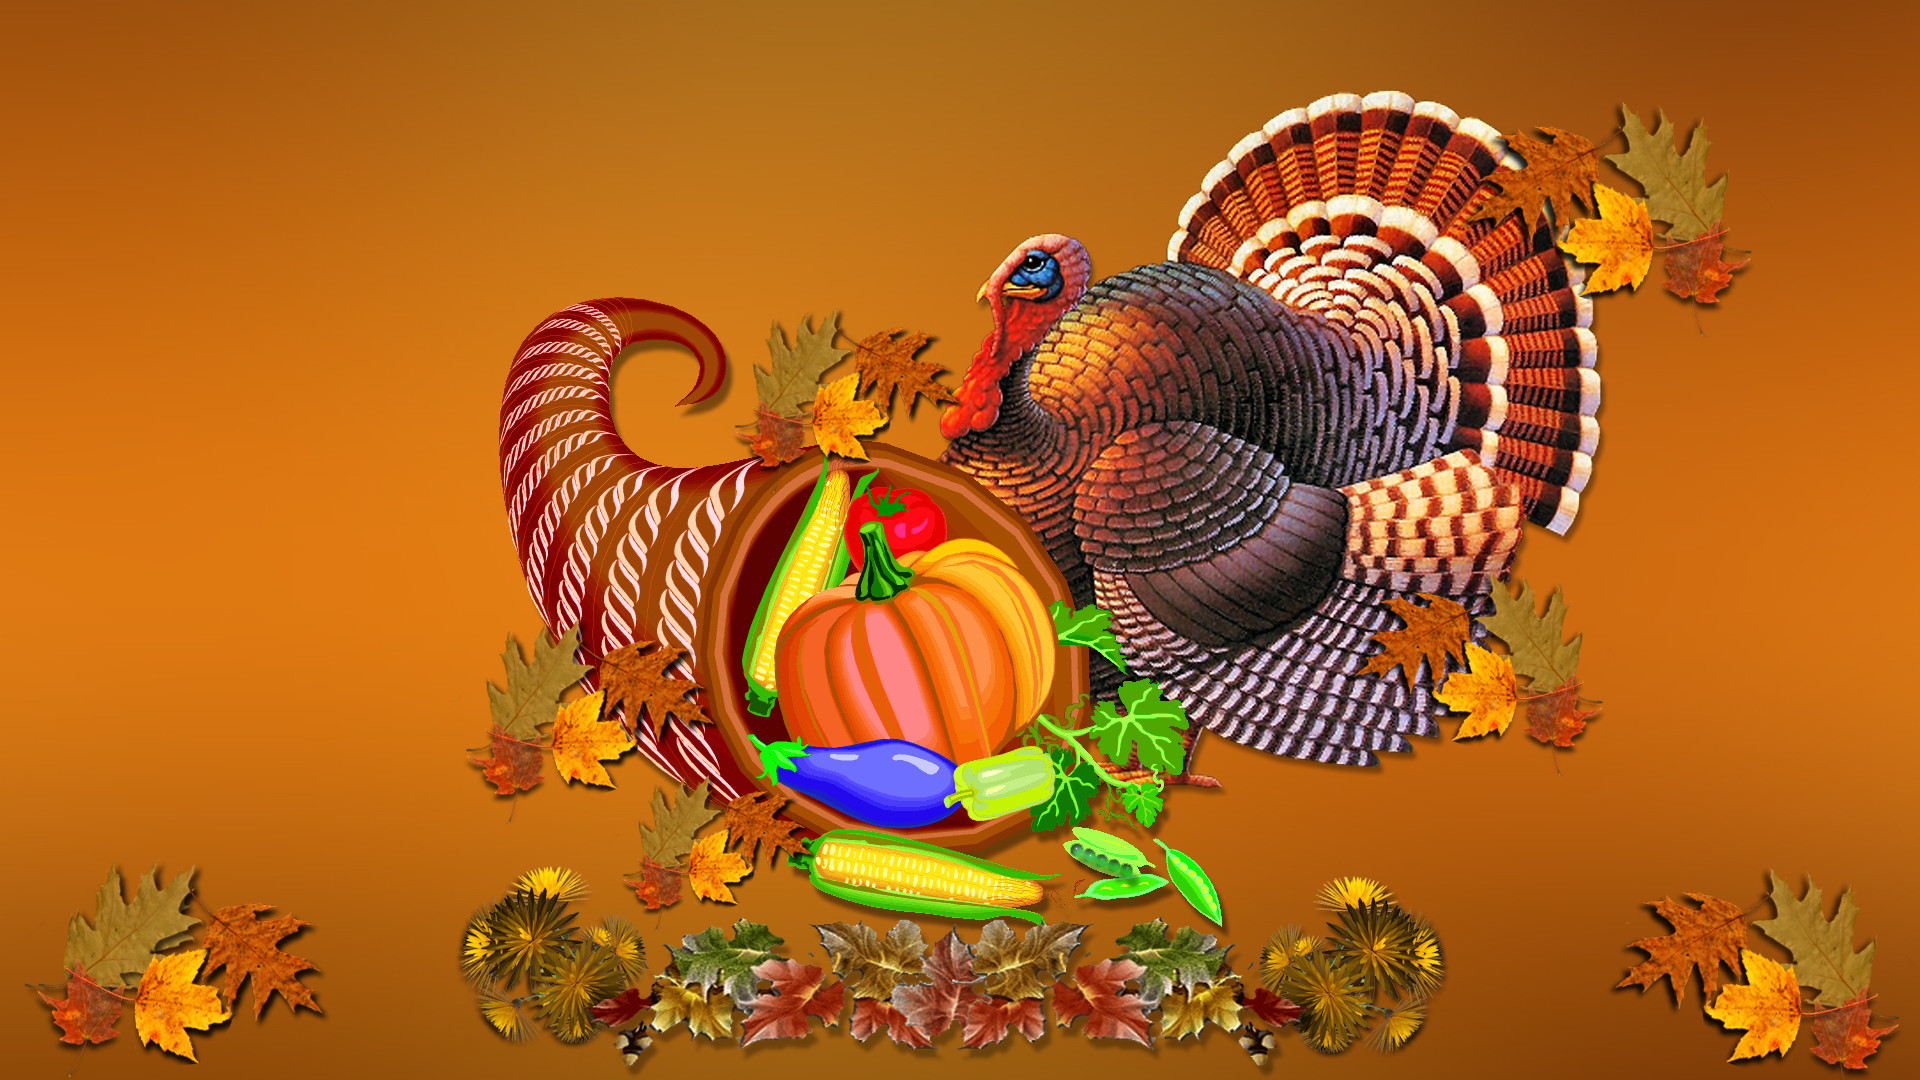 Res: 1920x1080, Turkey Pictures Thanksgiving Day 2012 Wallpapers.